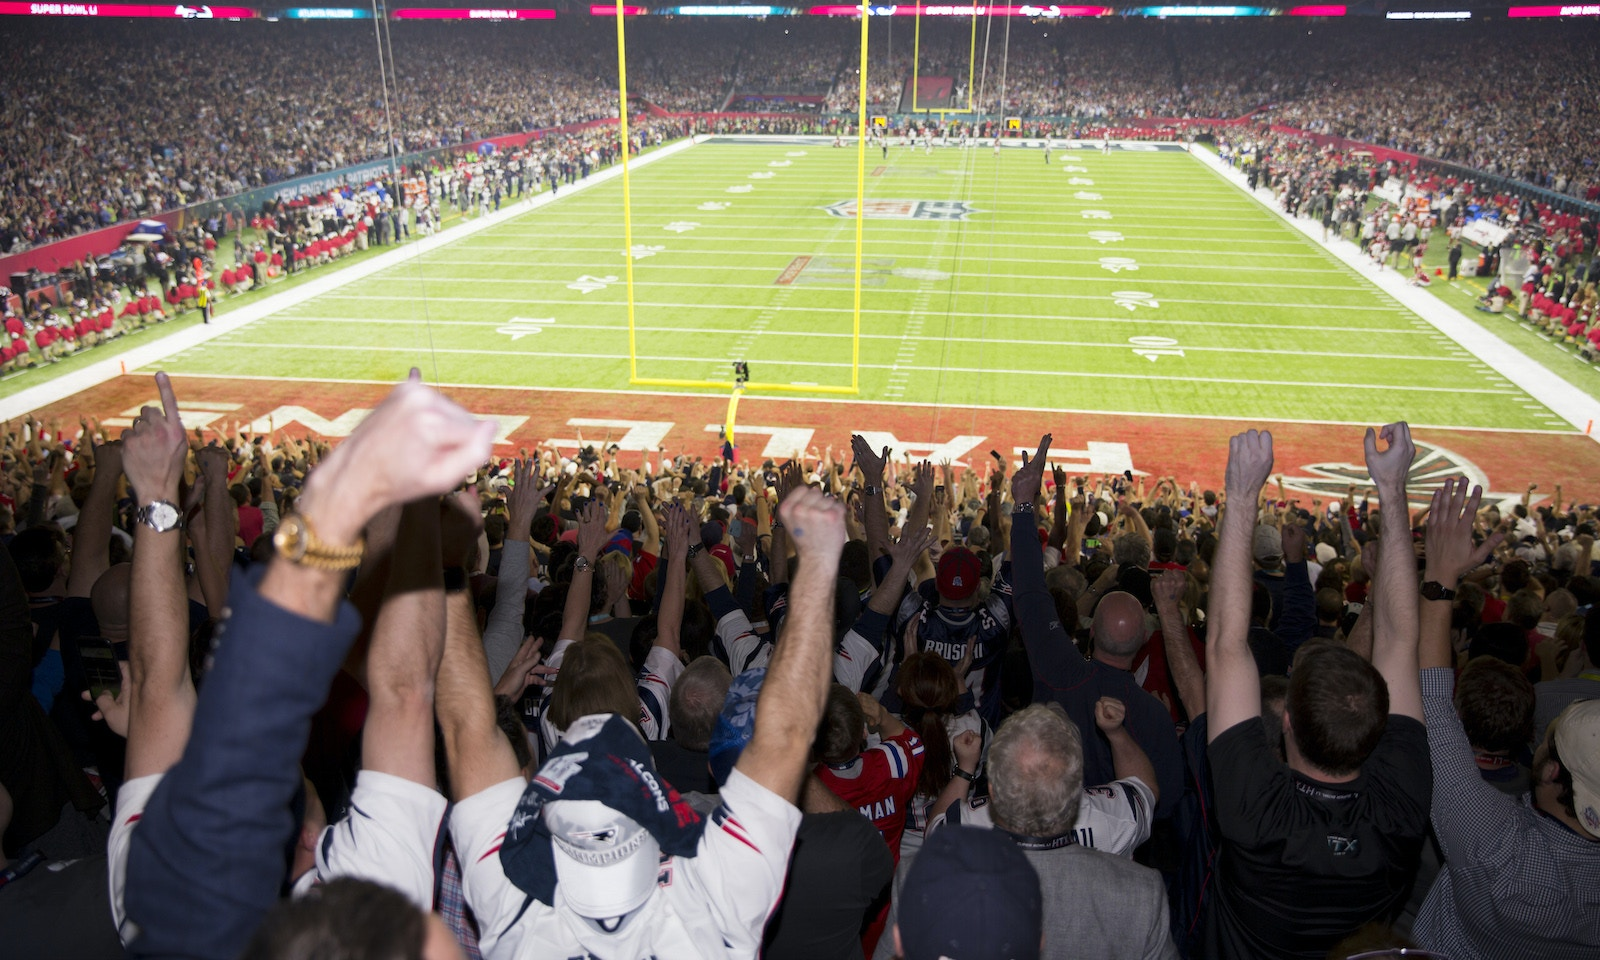 Experience The Ultimate Sporting Event - Super Bowl LIII, Atlanta